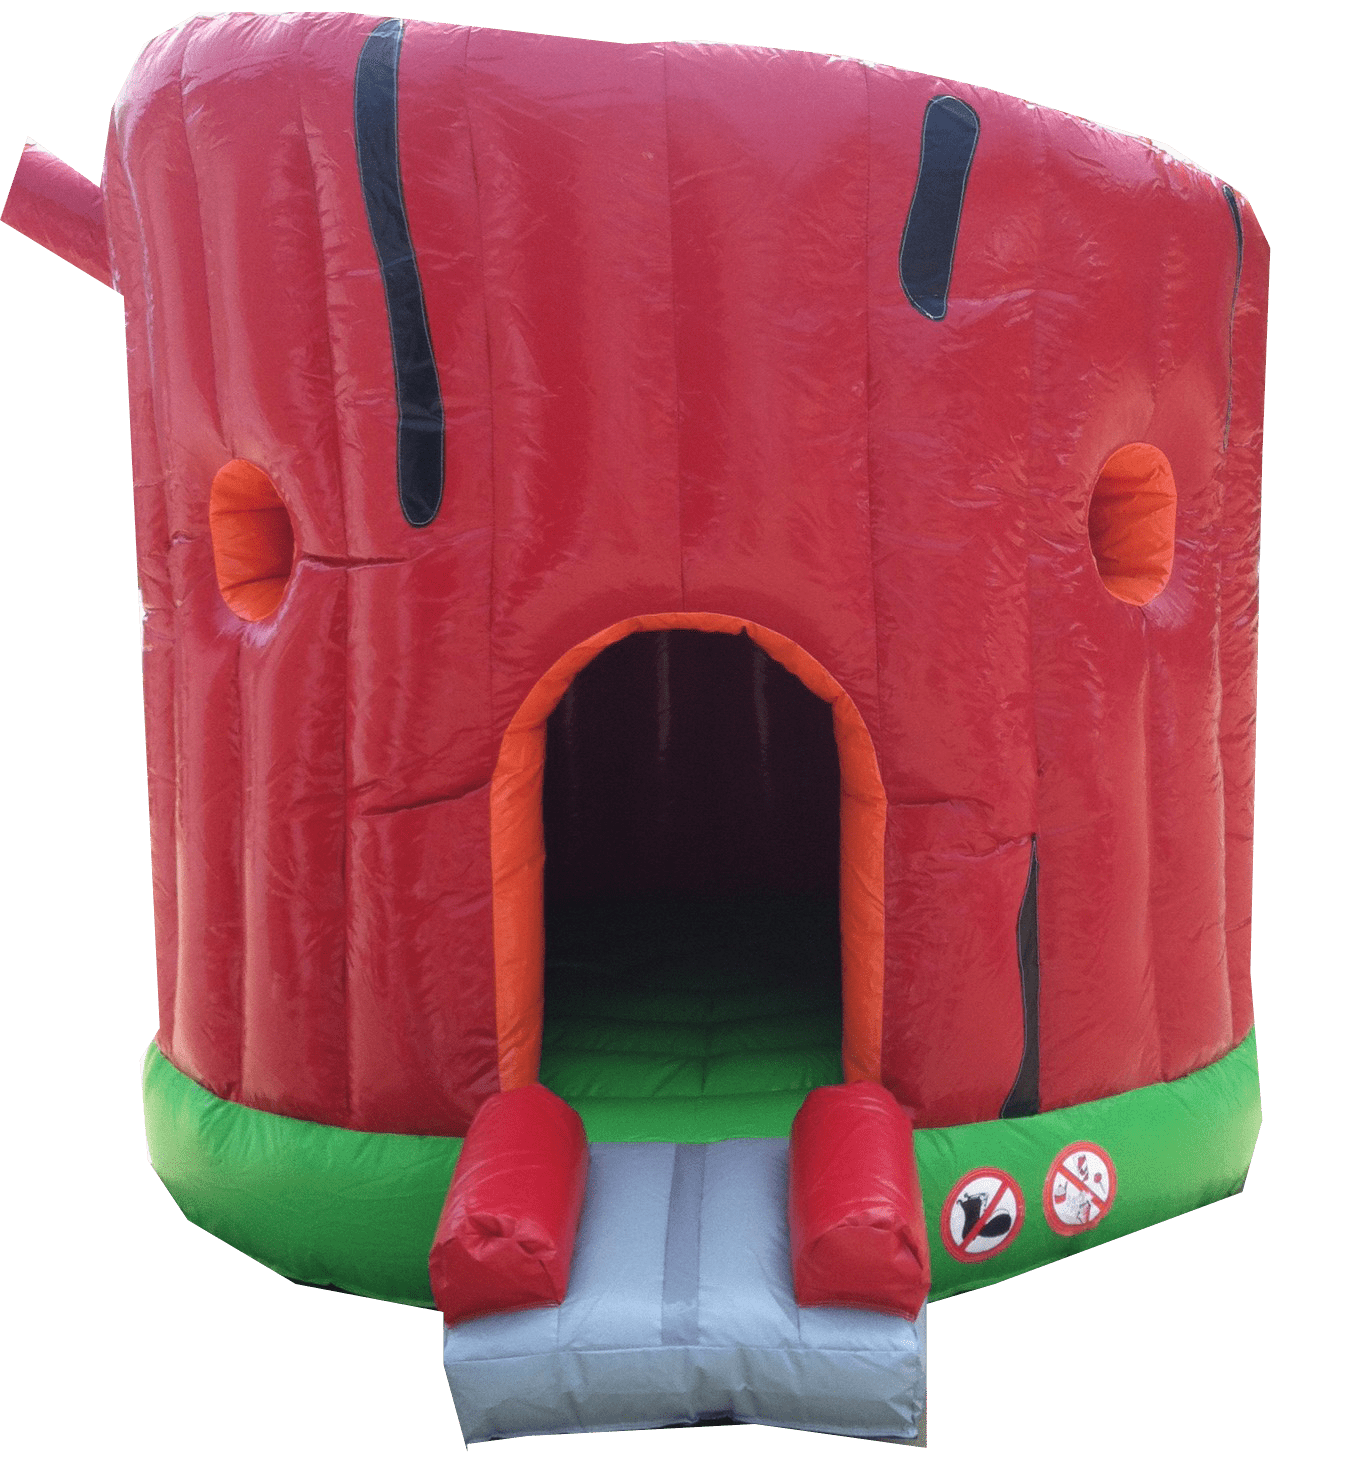 1Secret Tree house moonwalk bounce house front